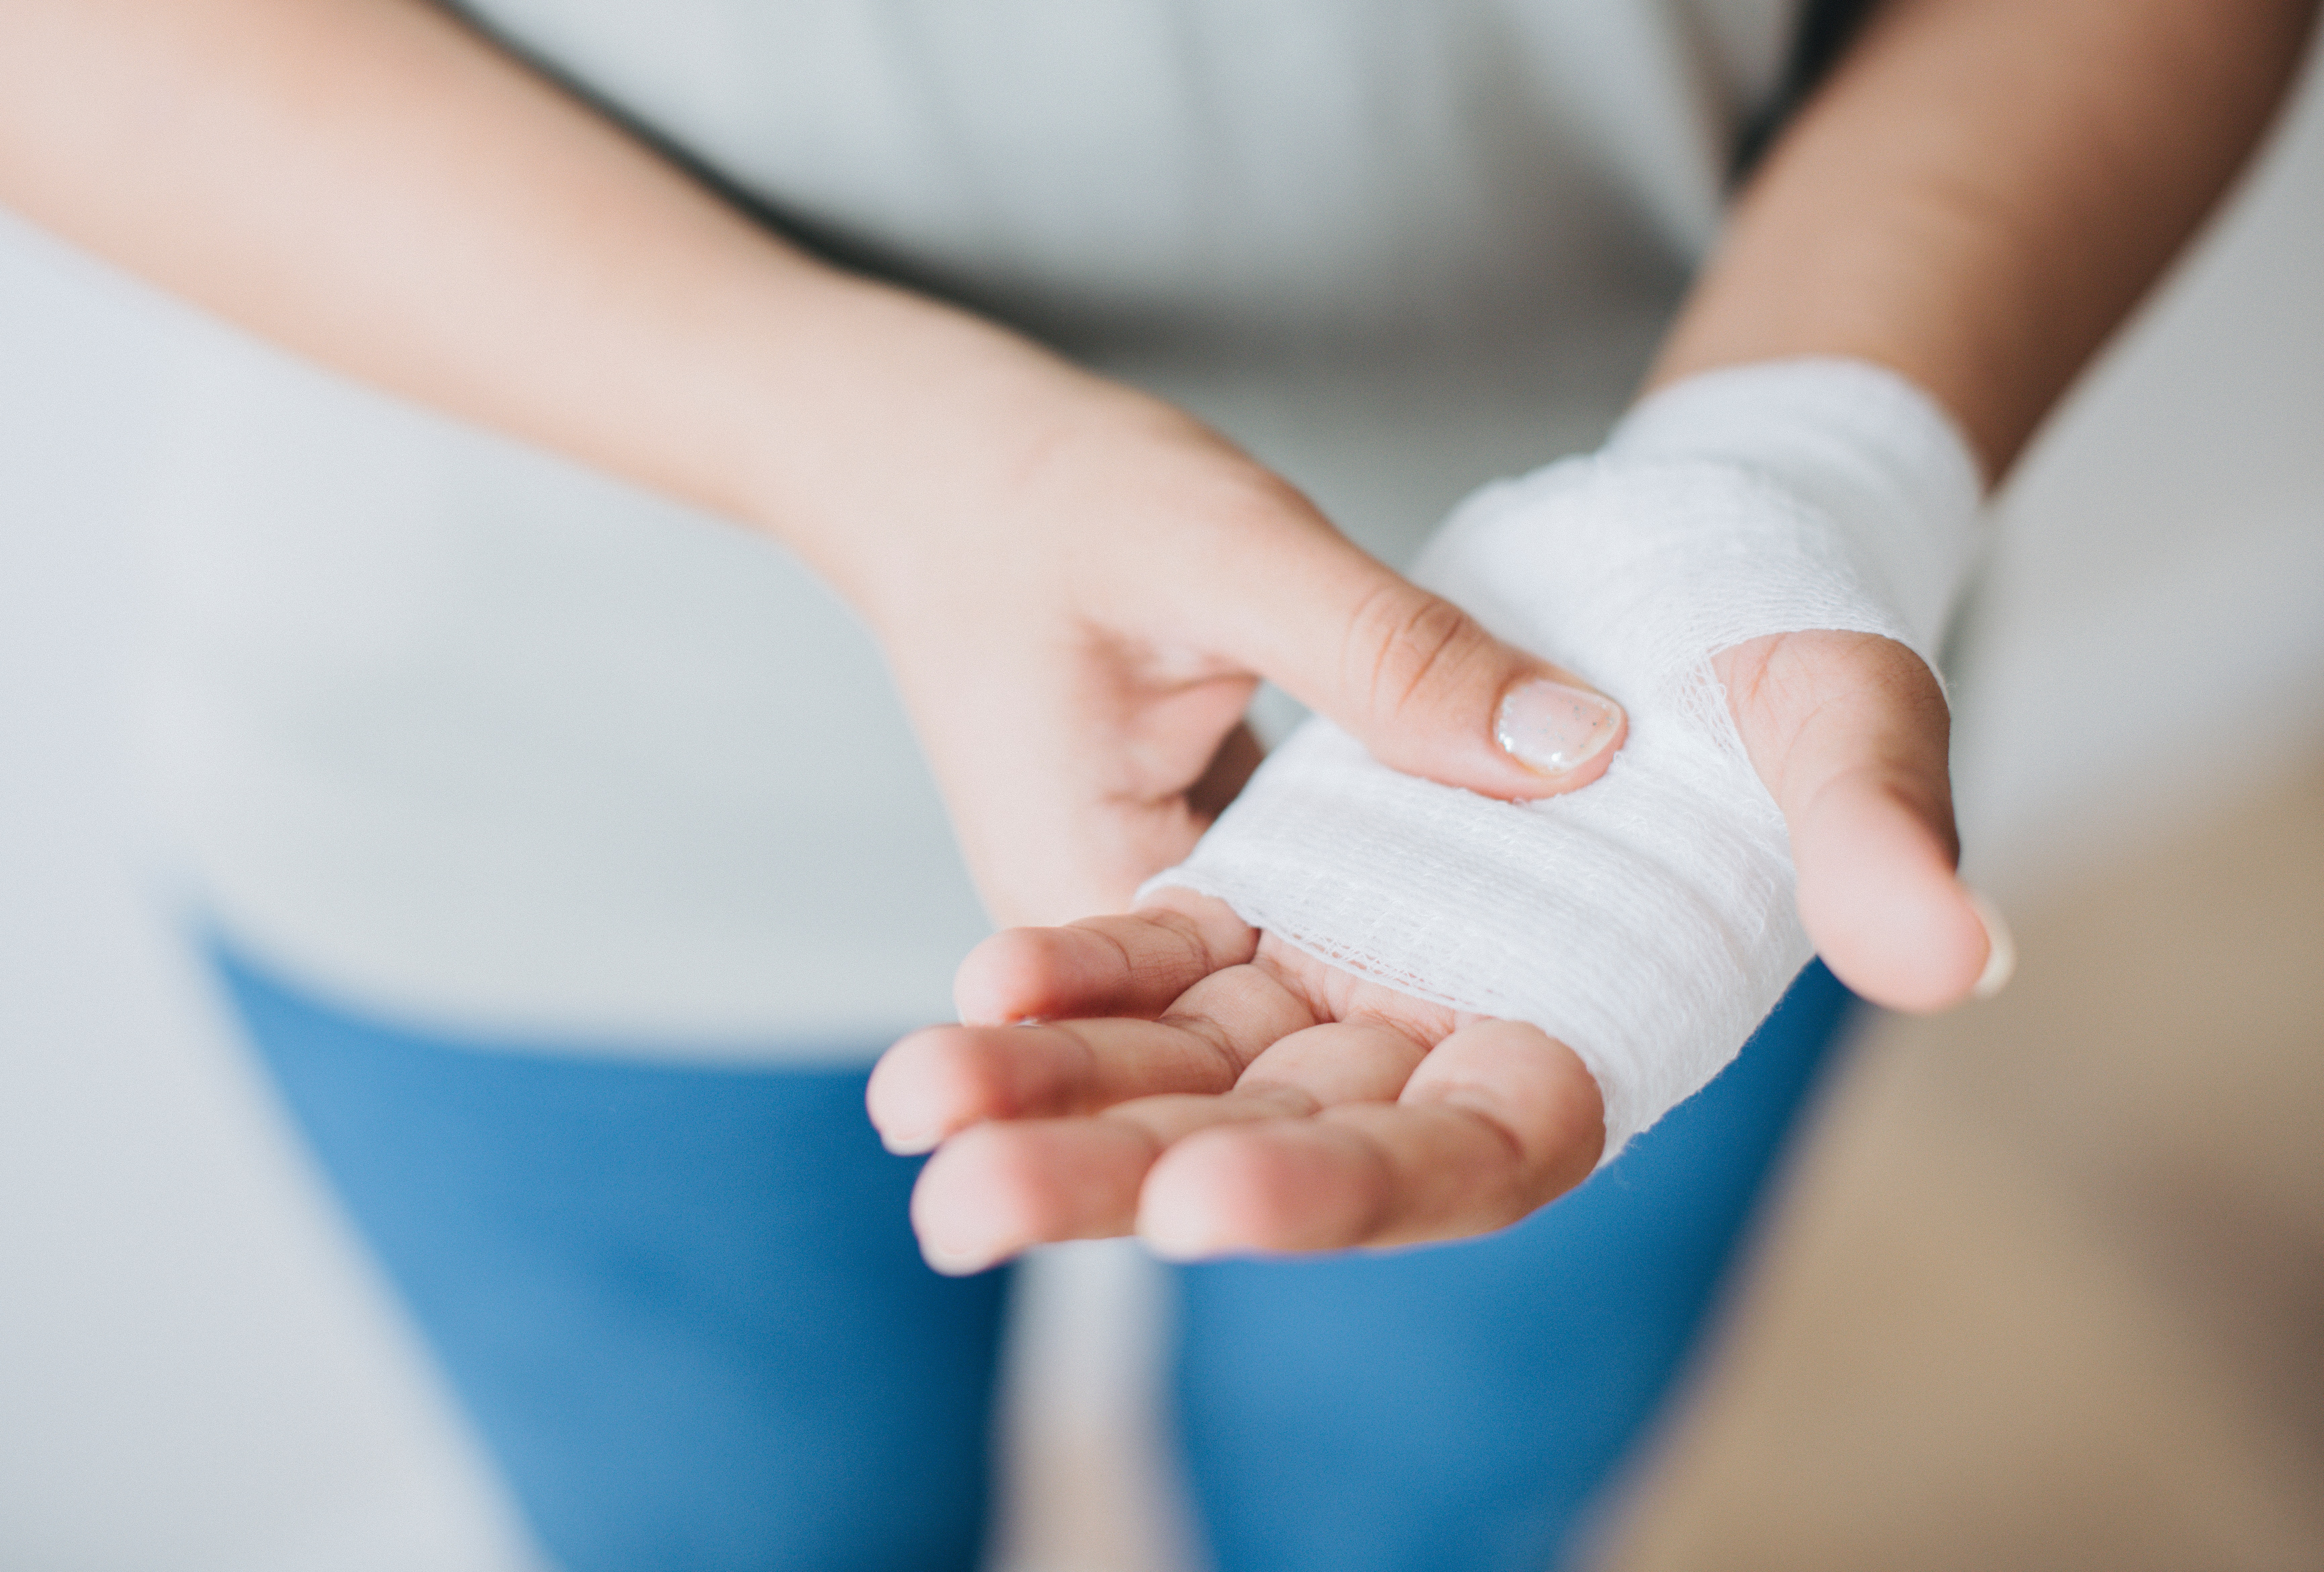 4 most common causes of hand and wrist pain